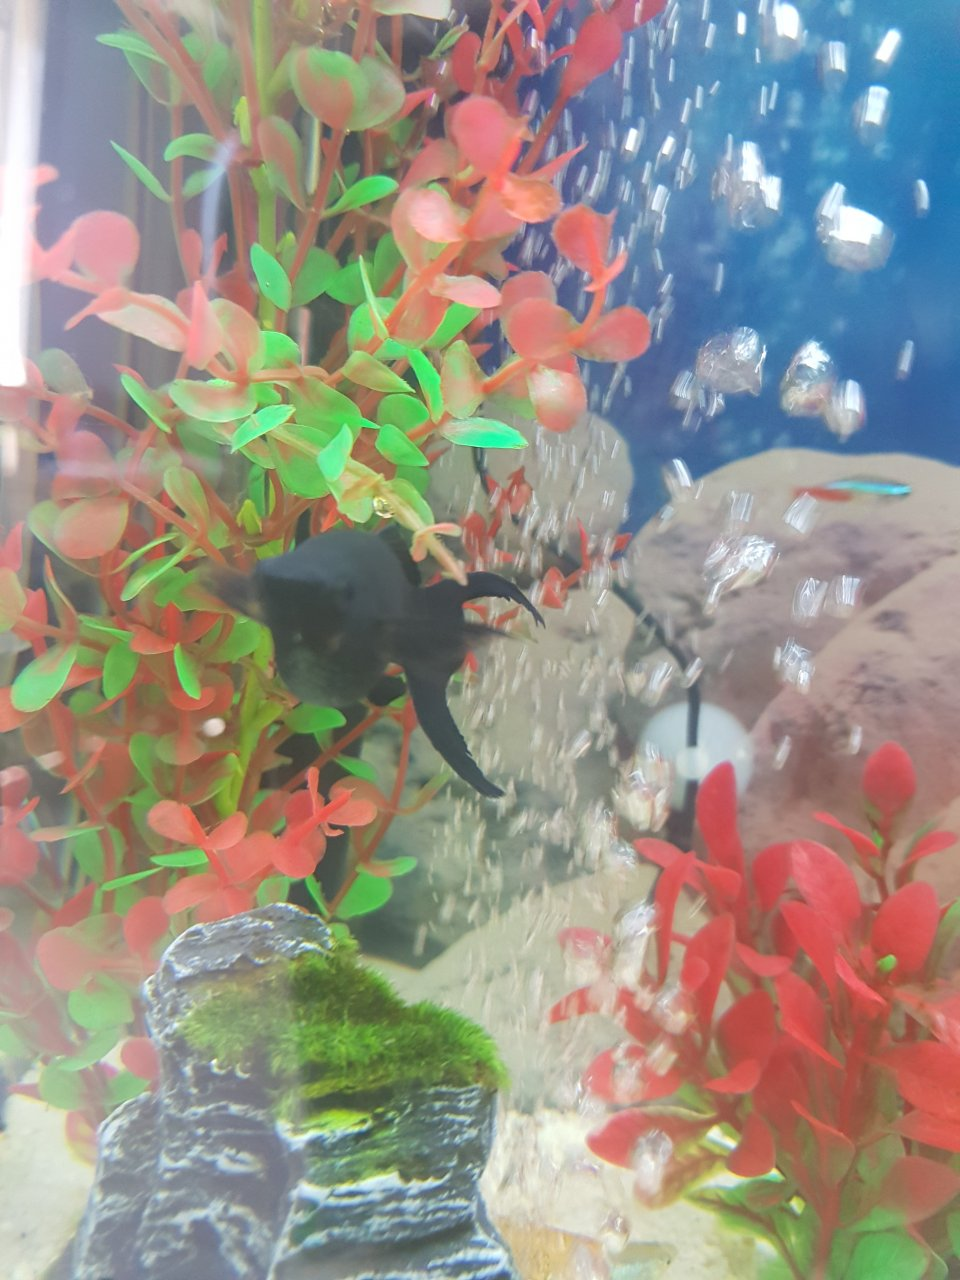 Freshwater fish store near me - I Went To A Fish Store Near Me And The Seller Was Convinced That It Is A Male Fish